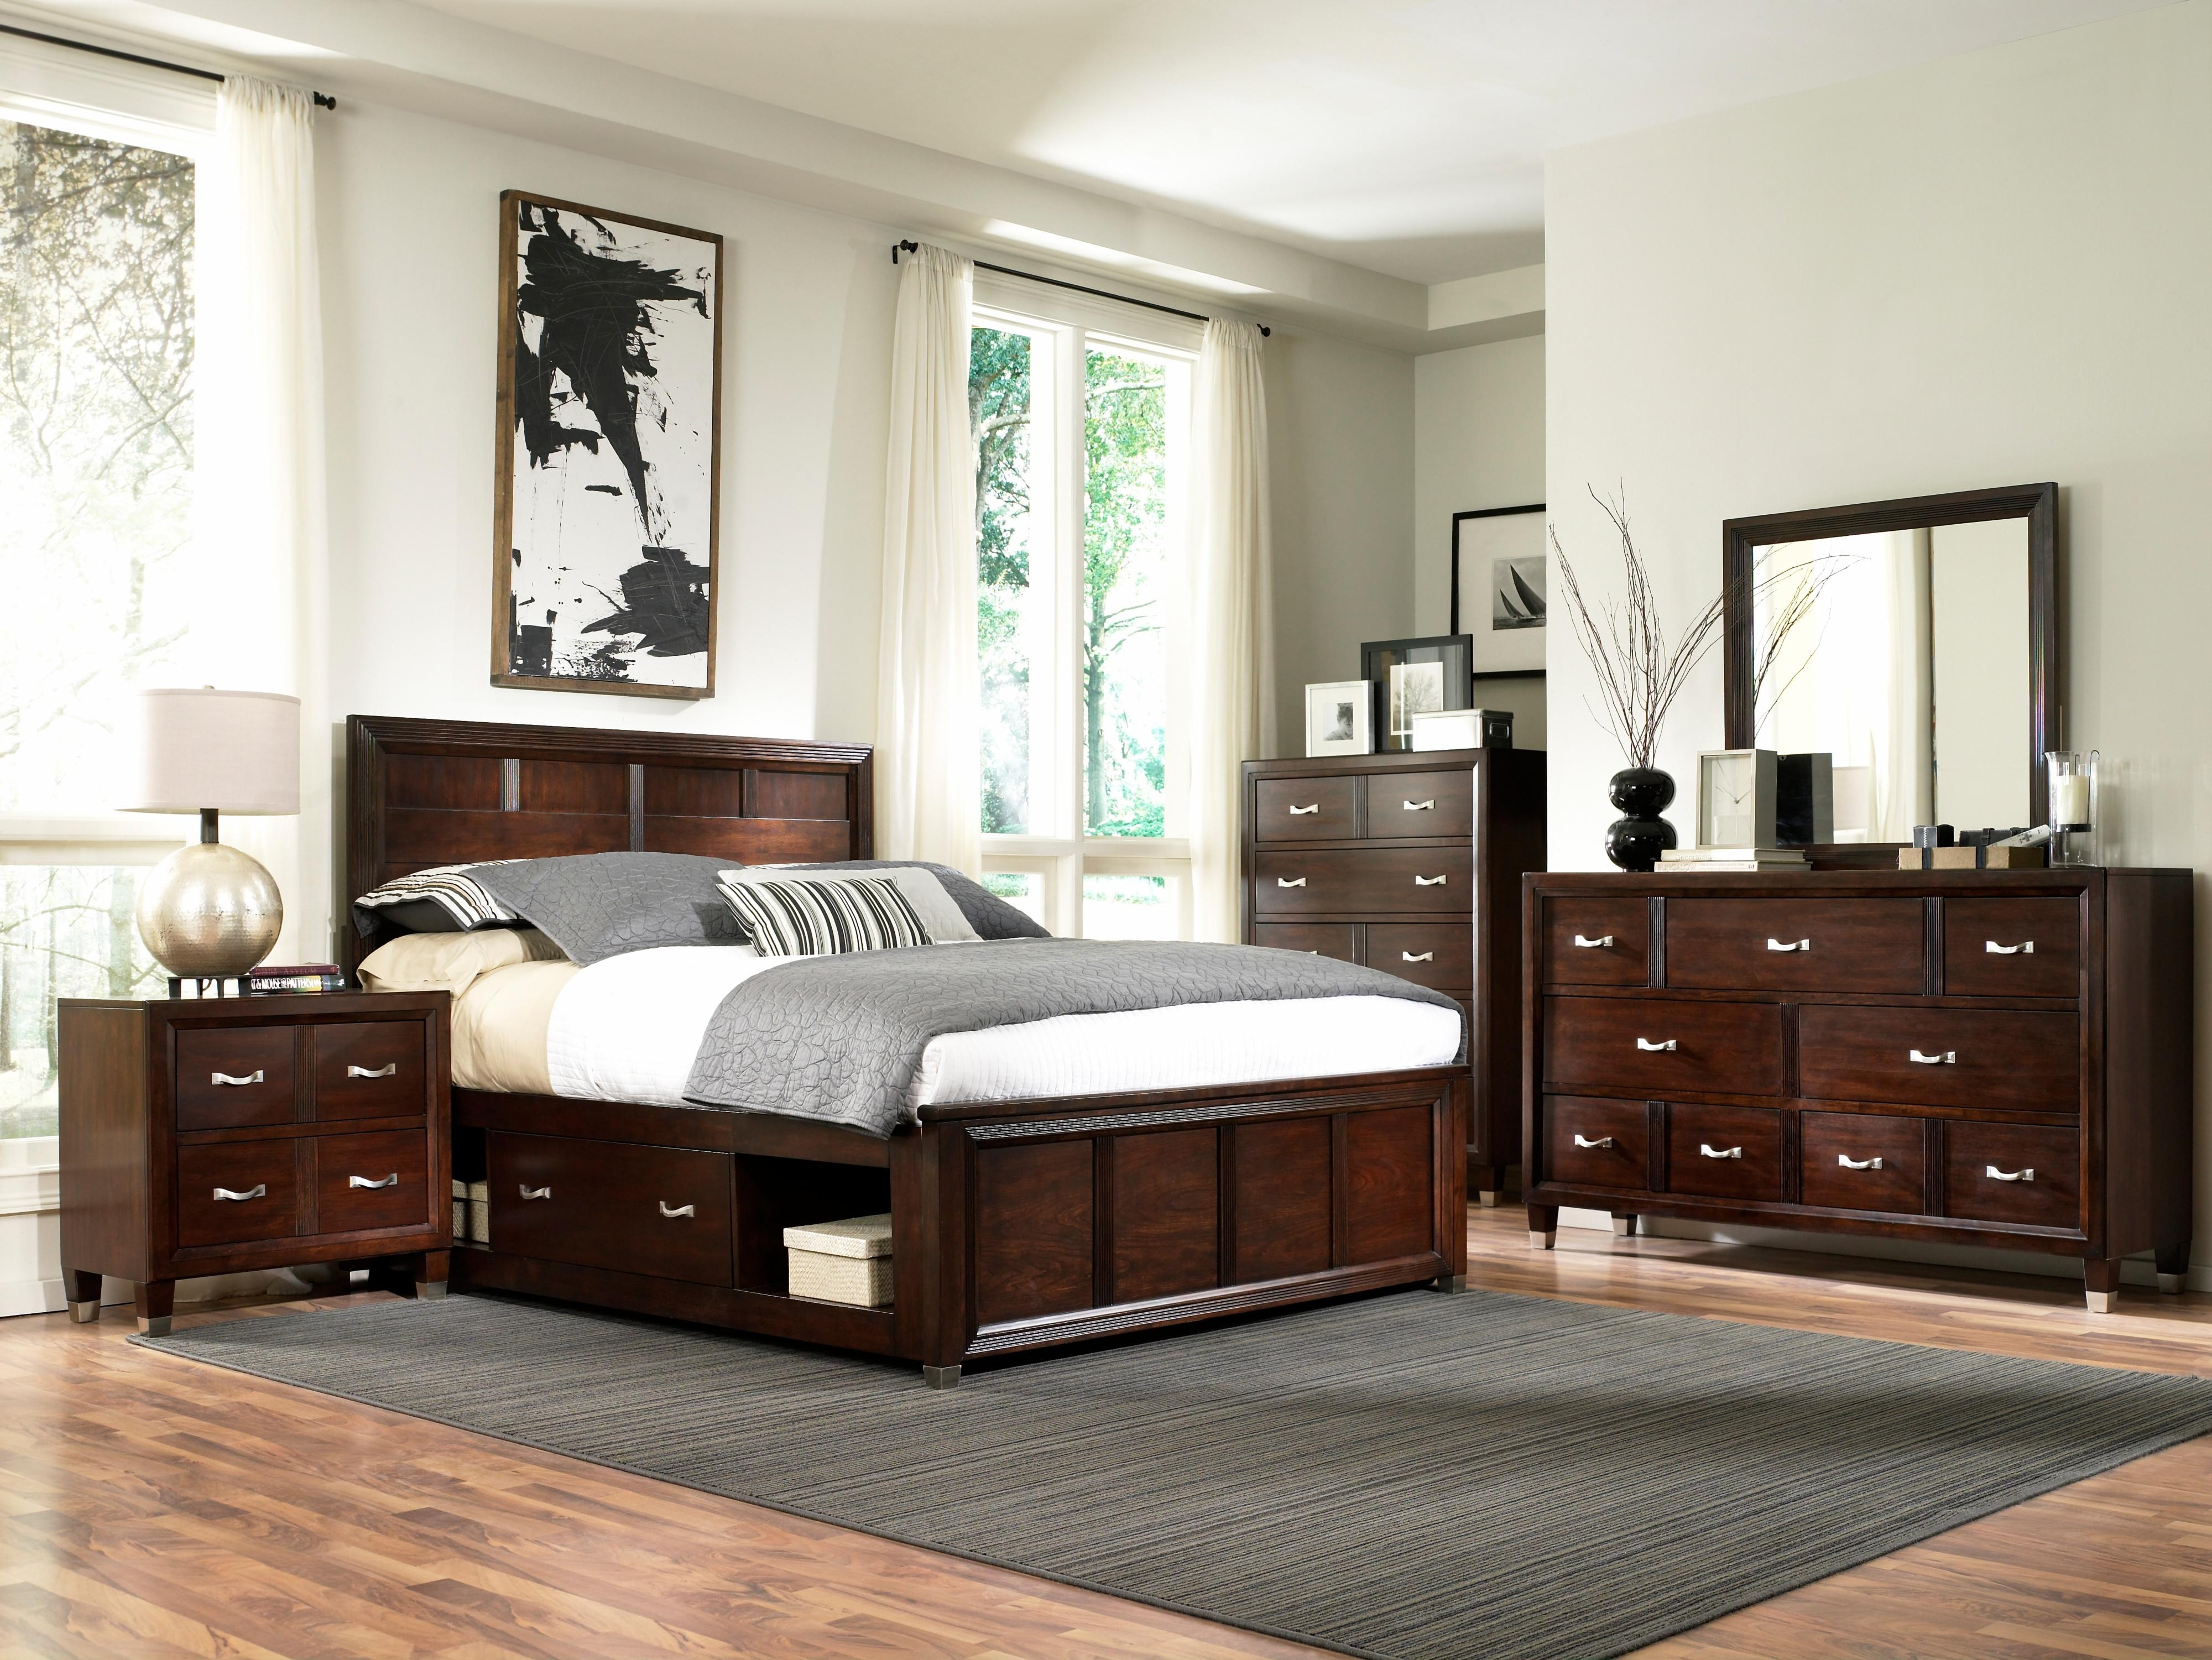 king captain's bed with single storage side rail by broyhill  - king captain's bed